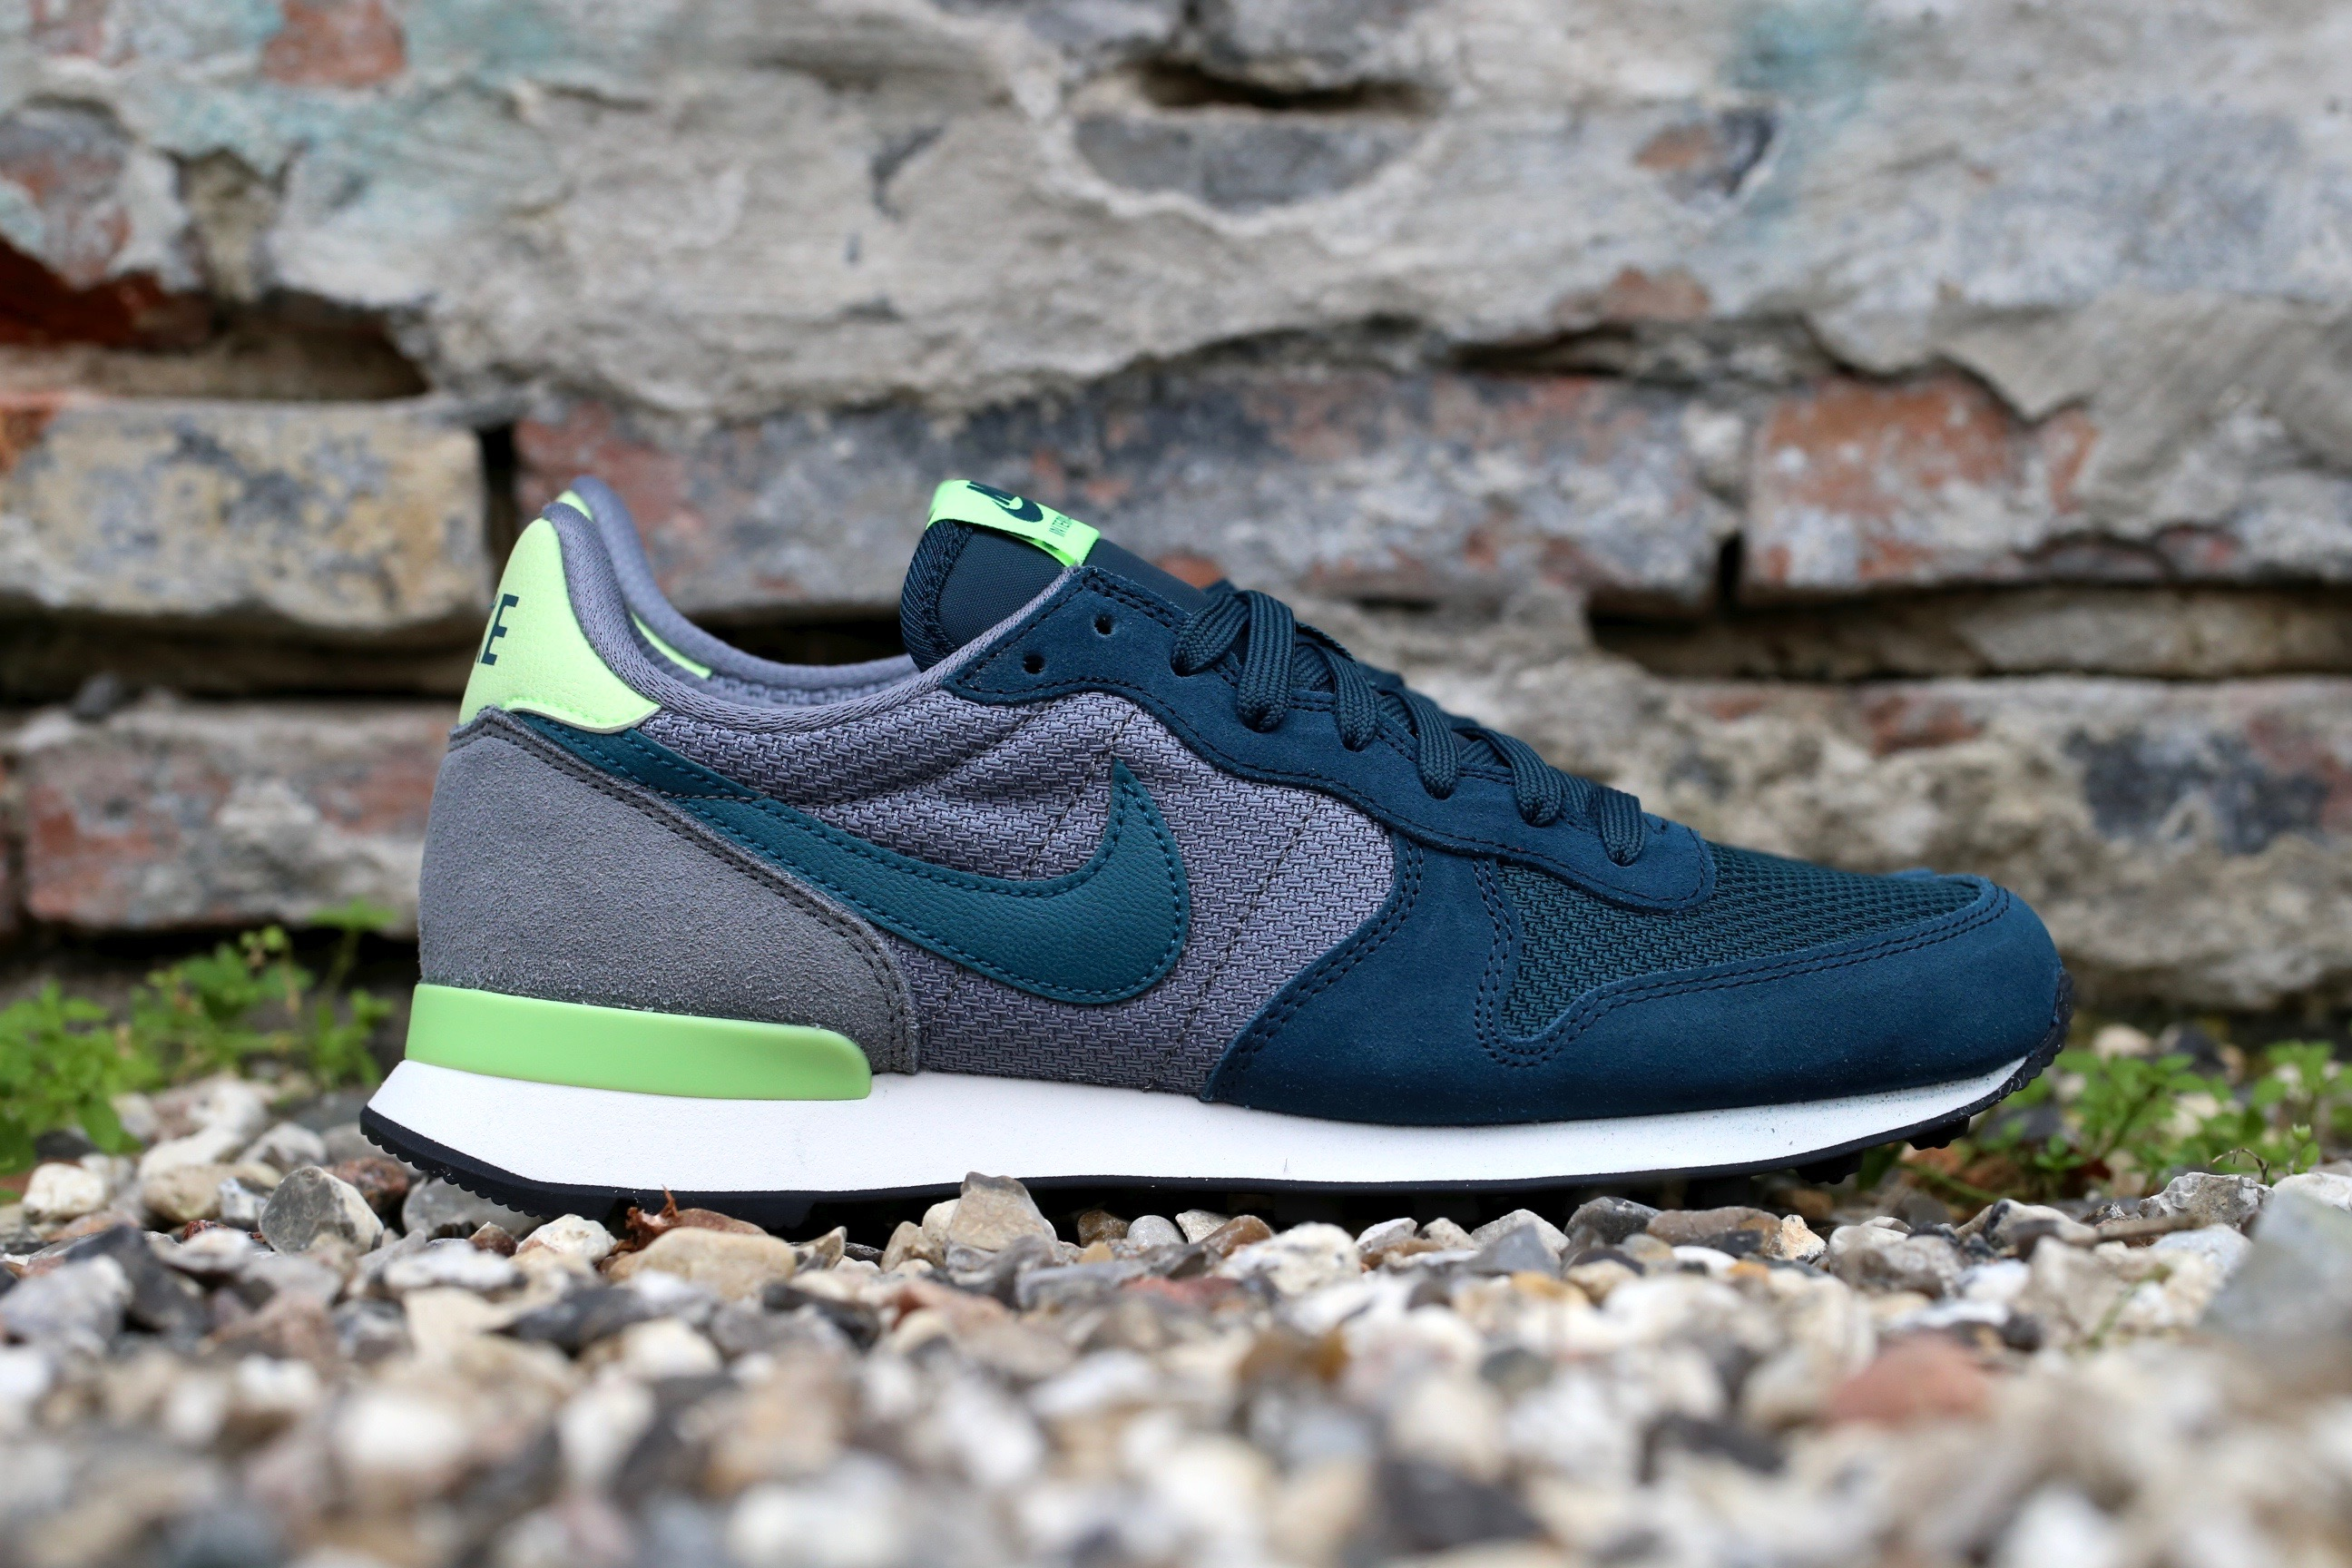 Nike Wmns Internationalist Mid Teal Teal Cool Grey Ghost Green